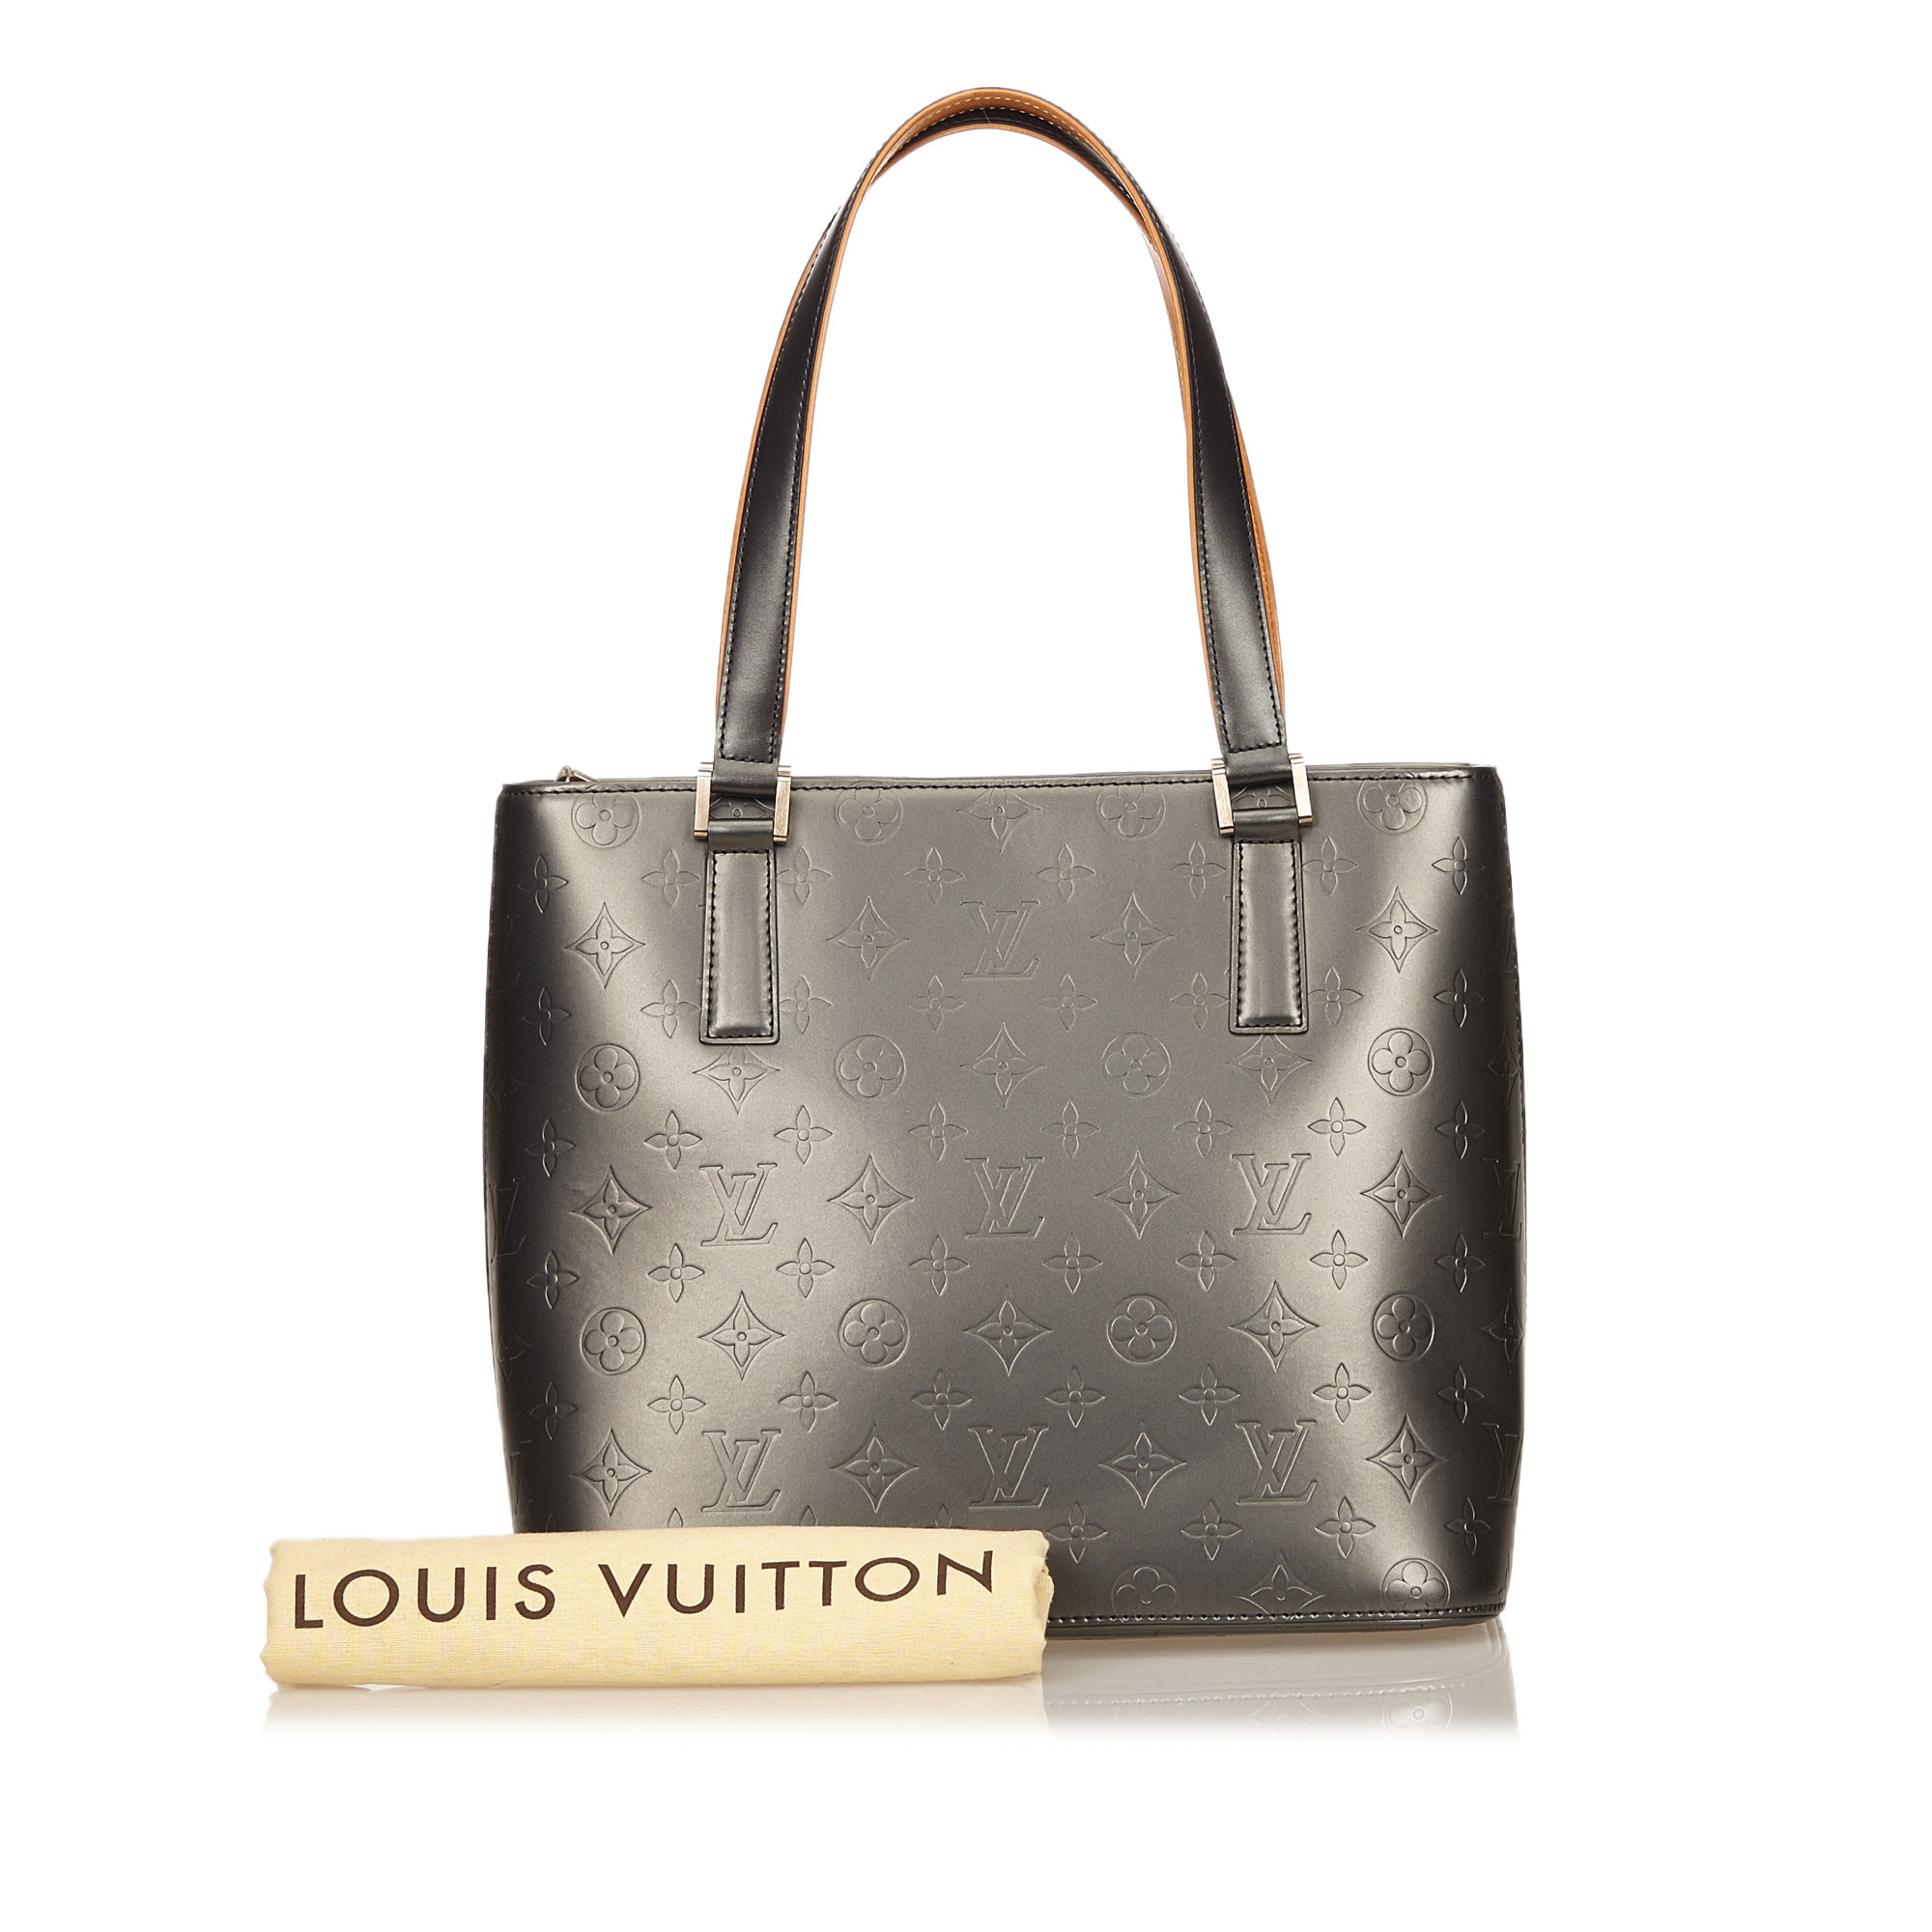 Louis Vuitton Silver Monogram Mat Stockton Tote